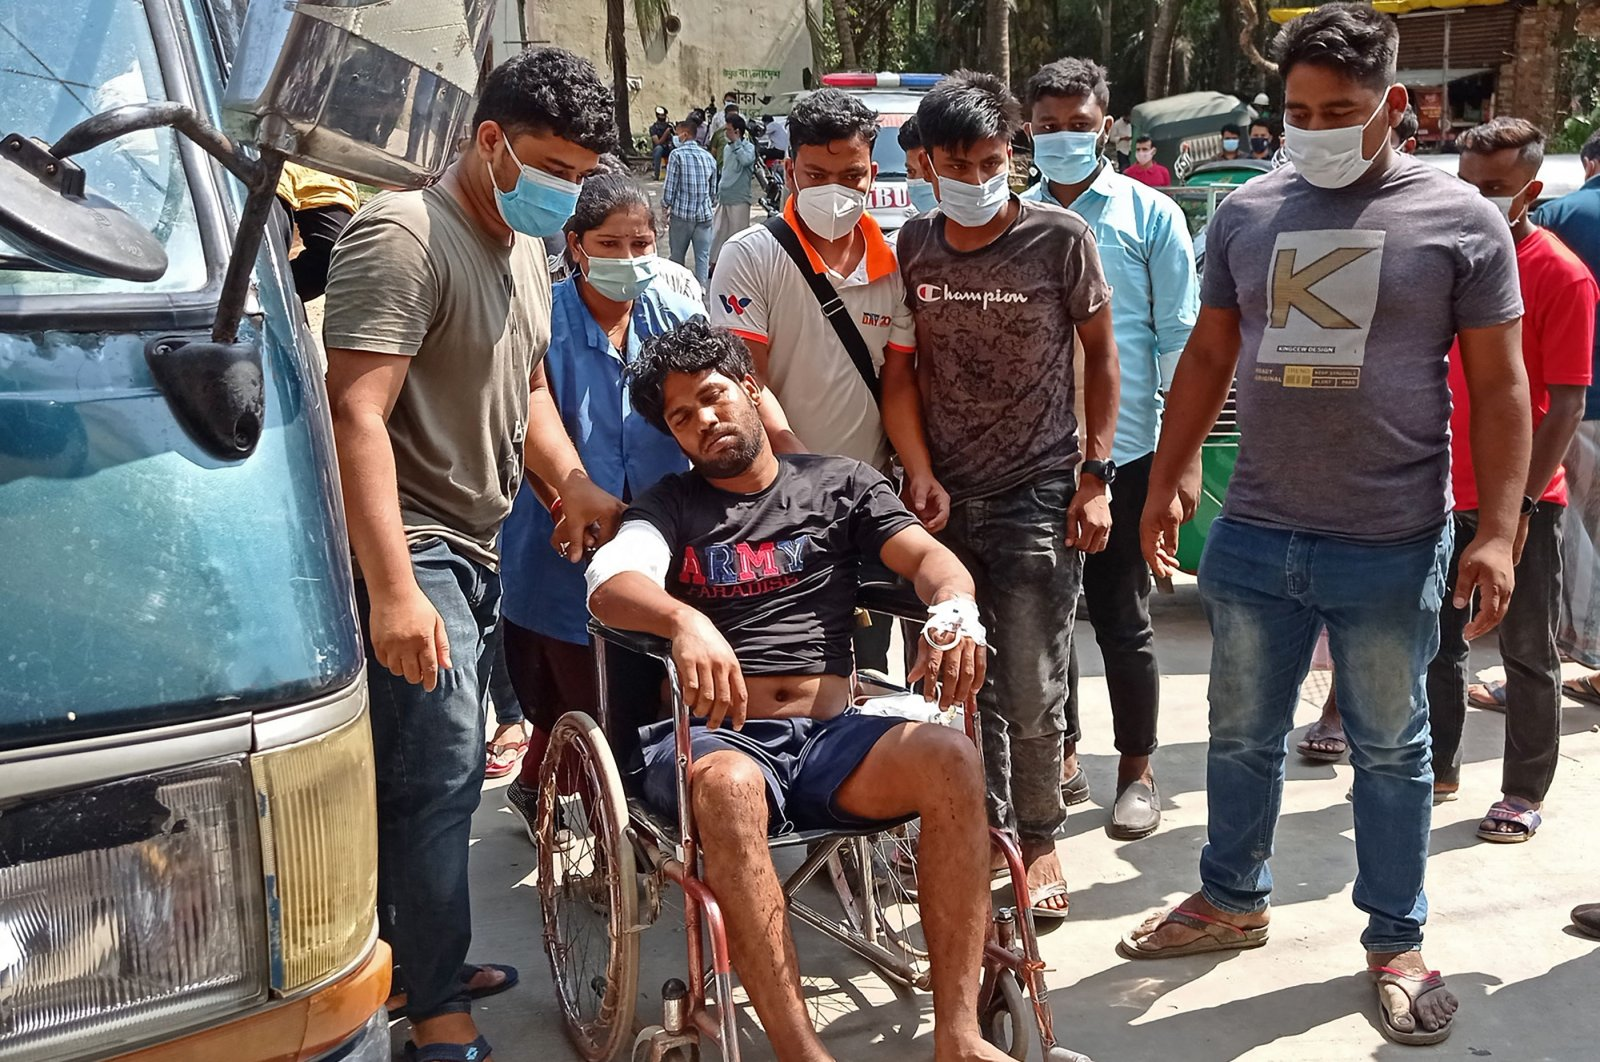 An injured man rests on a wheelchair after being treated at a hospital following a protest by demonstrating workers at the construction site of a Chinese-financed power plant, in Chittagong, Bangladesh, April 17, 2021. (AFP Photo)